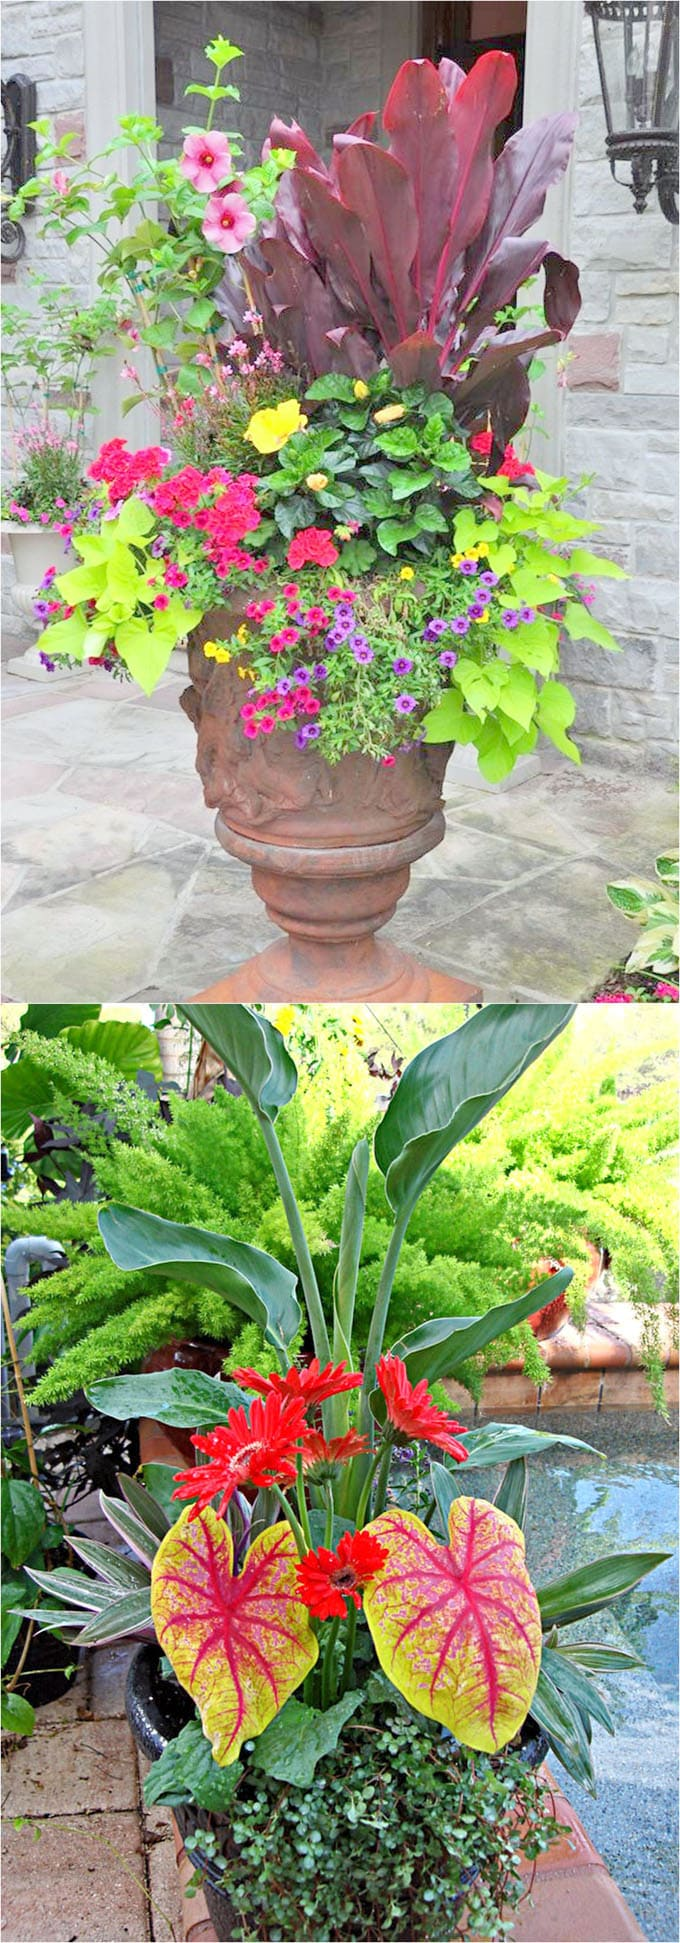 dramatic container gardens with colorful plants